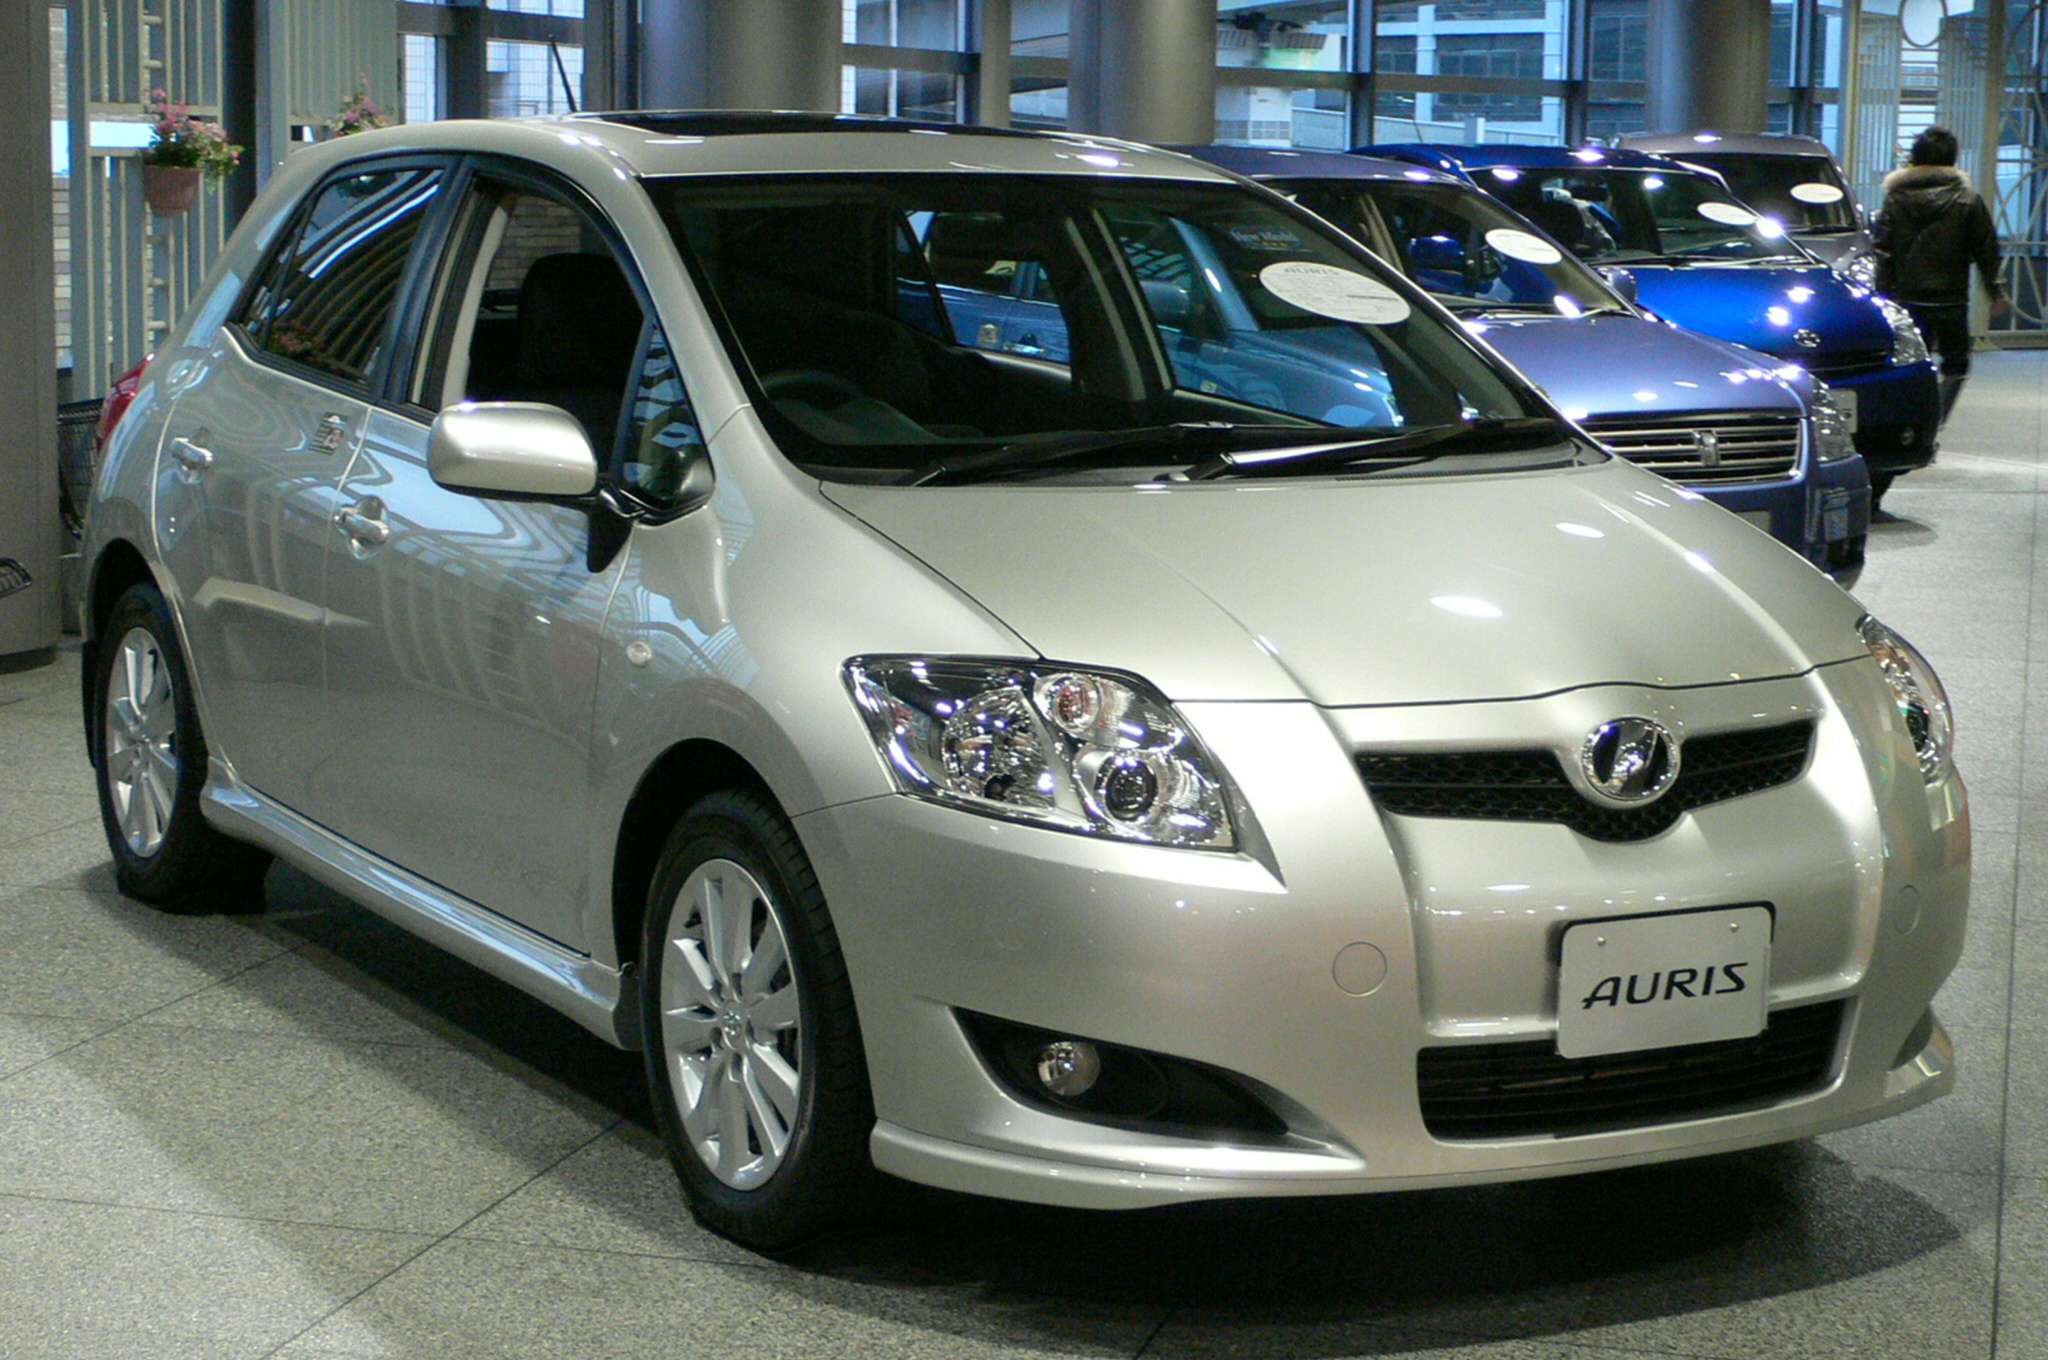 cars reviews images pictures and specs toyota auris 2009 specs and reviews. Black Bedroom Furniture Sets. Home Design Ideas